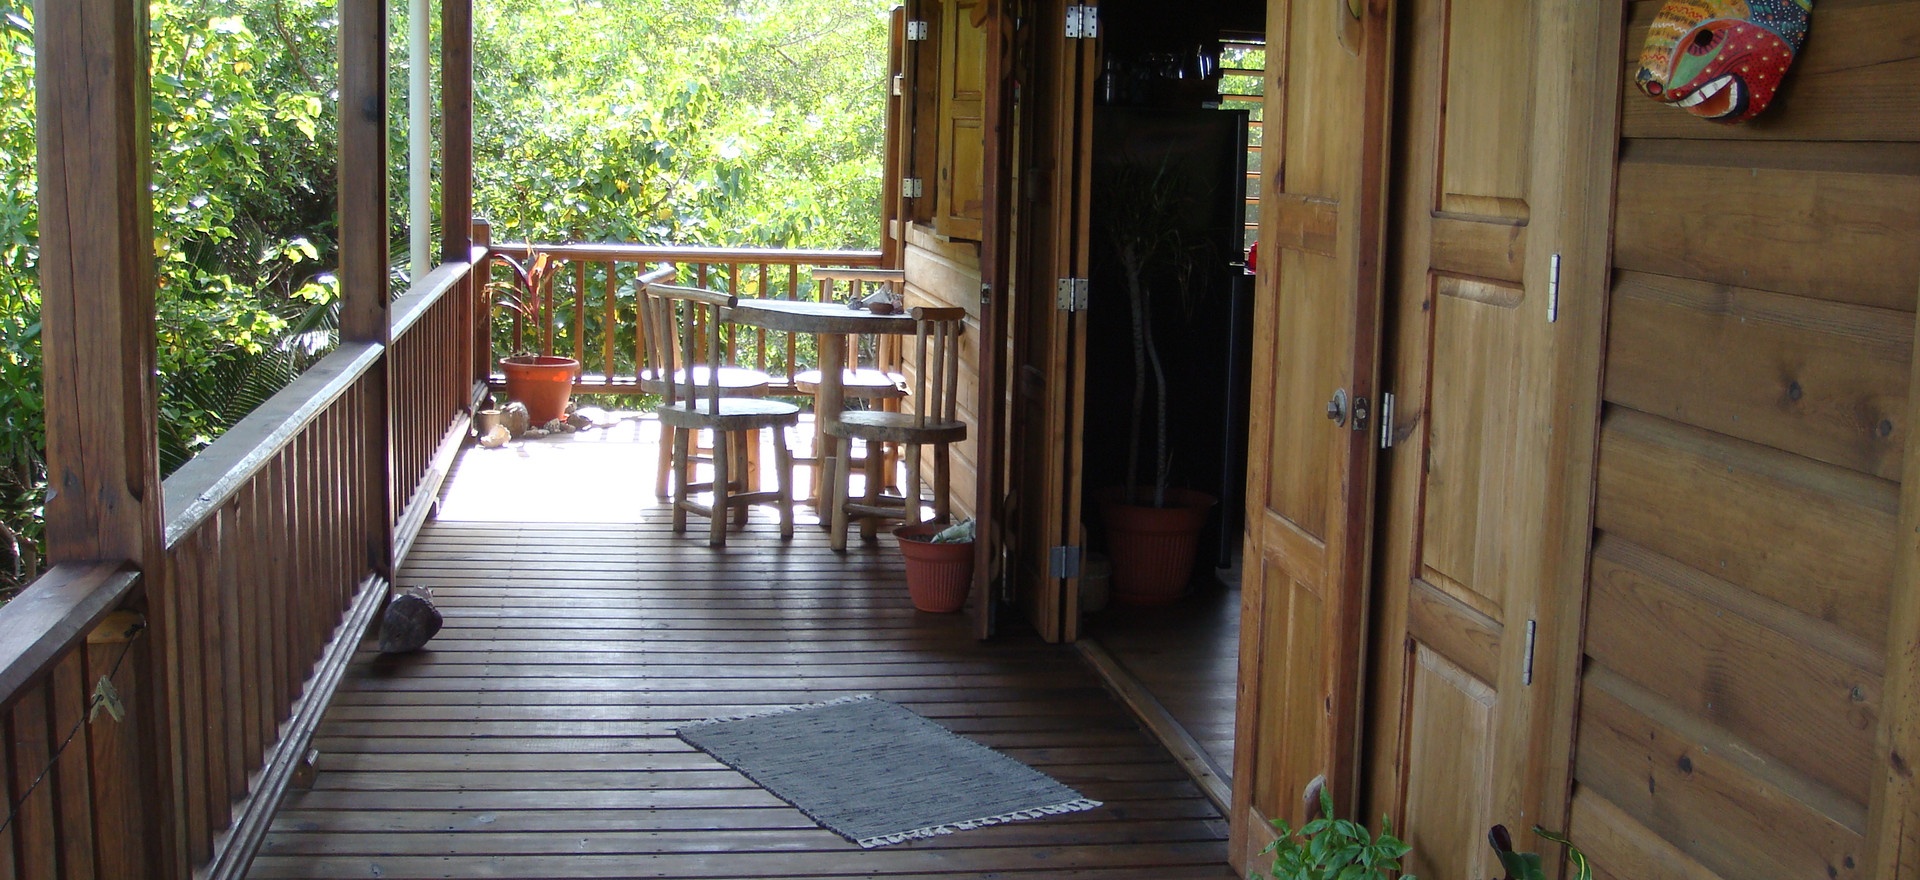 3. dine on your large porch in the shado